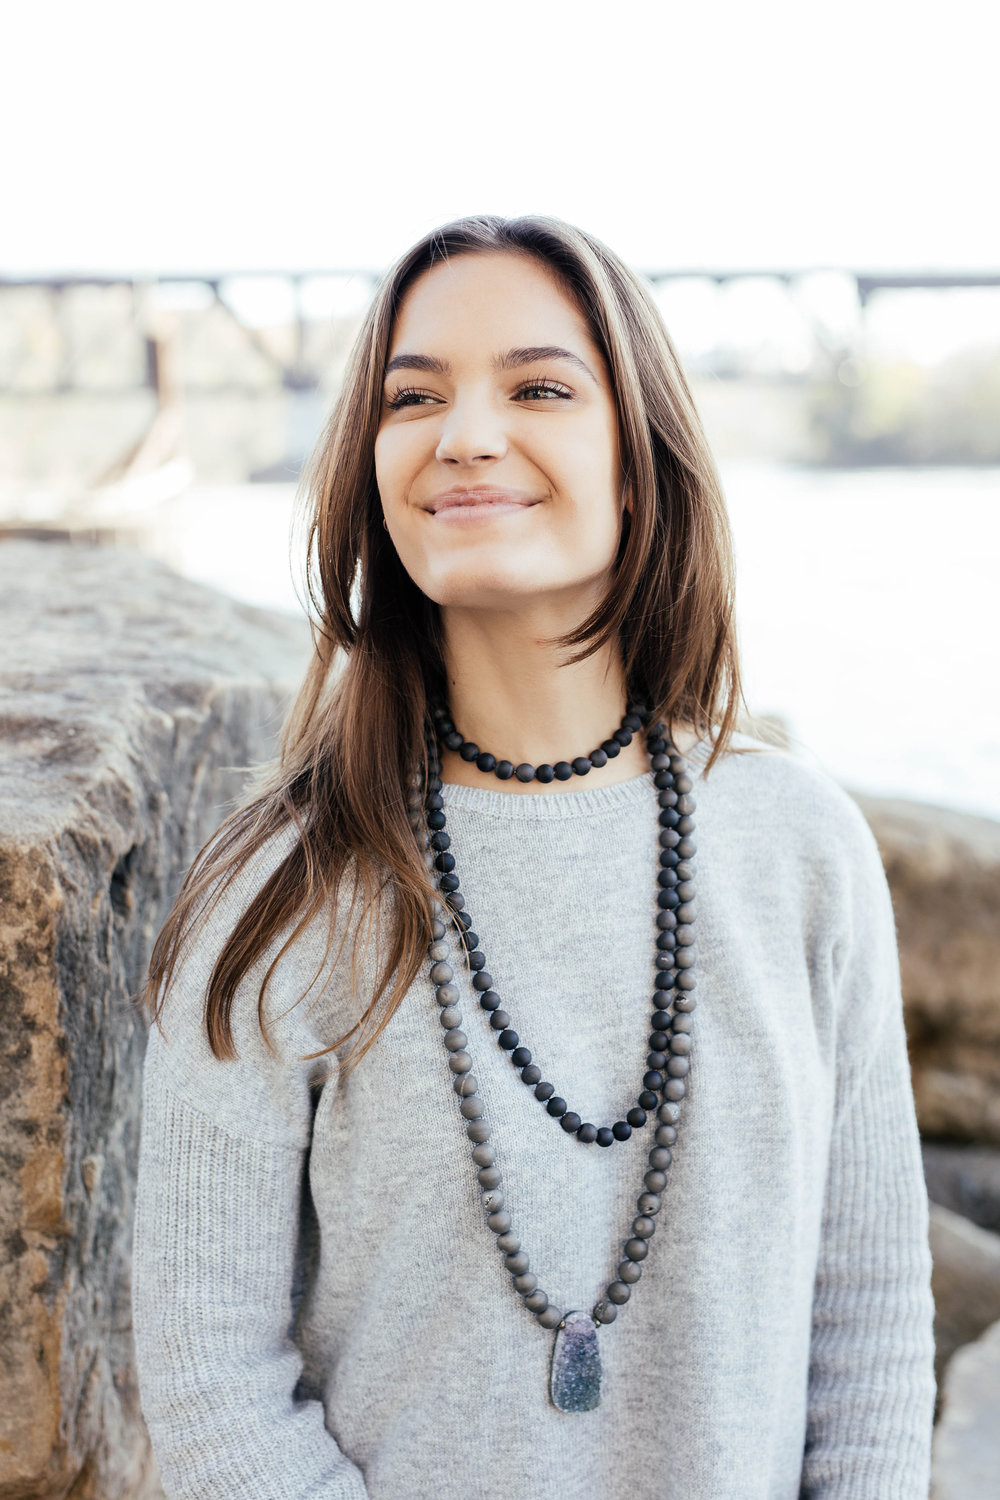 VALENTINE/GALENTINE: Layer a chunky statement necklace over your cozy sweater for another easy look that's less festive and more girly. This is casual enough to wear to school or work and can easily transition into a date night look or a Galentine's dinner.